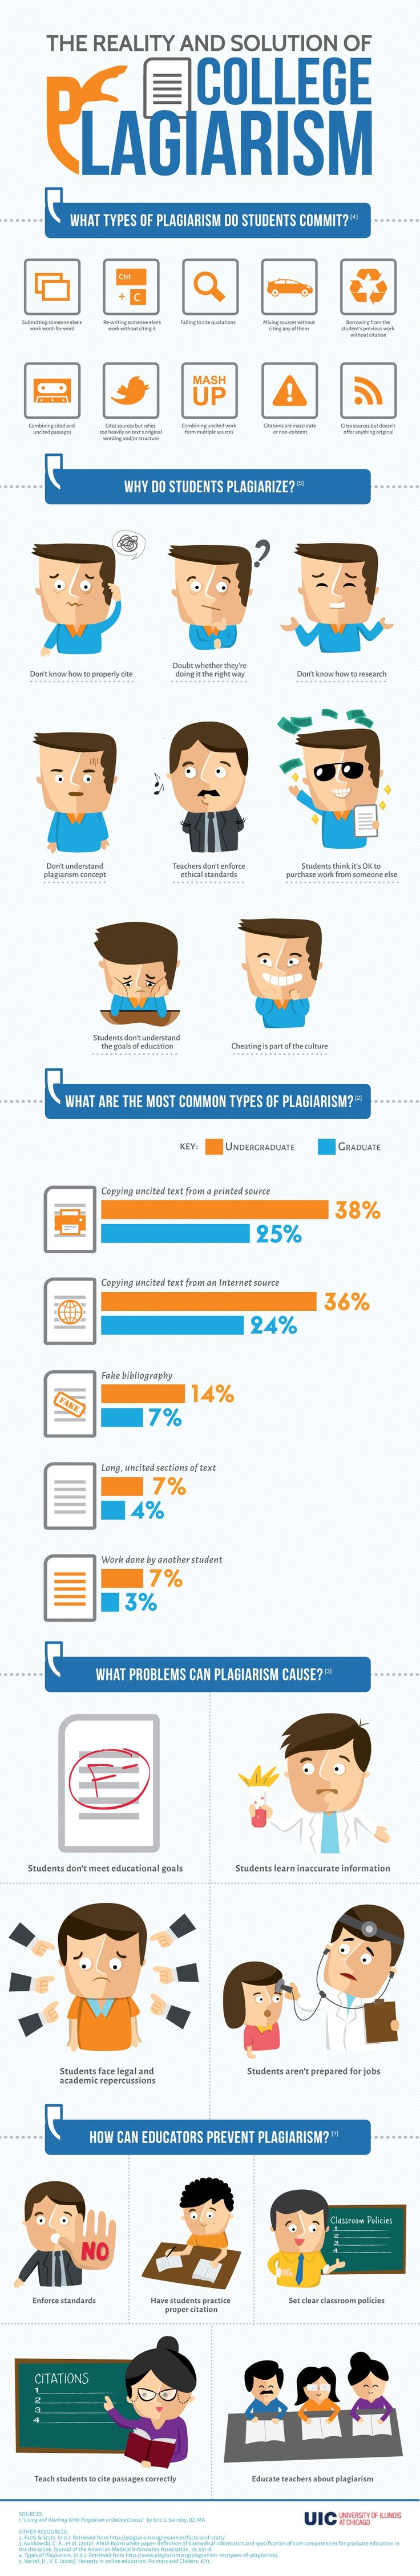 best ideas about plagiarism checker for students why students plagiarize and what schools can do to stop it infographic